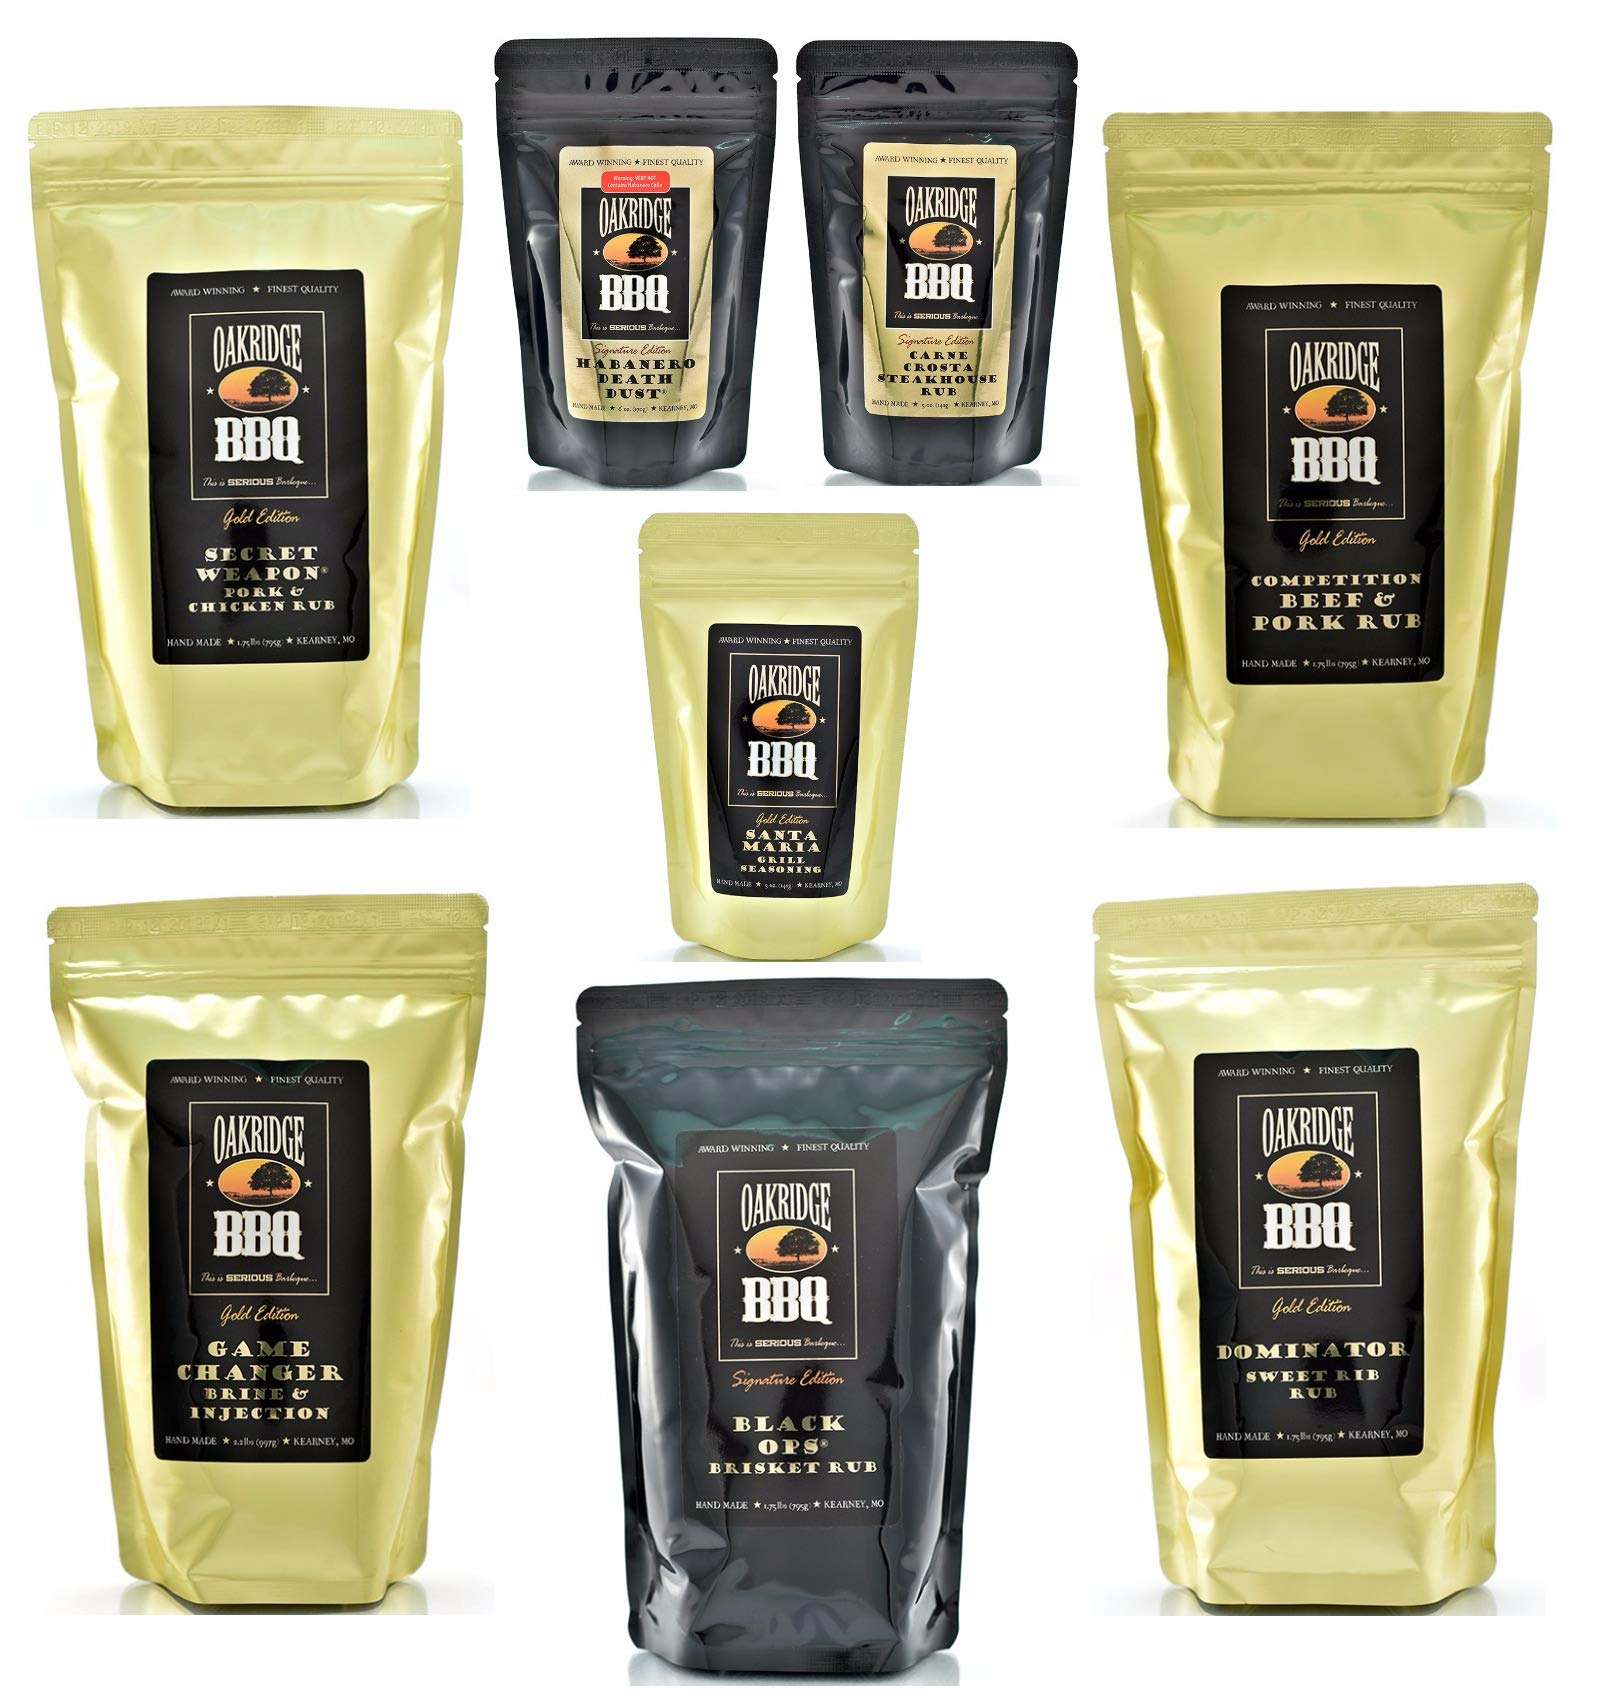 Oakridge BBQ The Ultimate Competition BarBQ Kit – Contains Eight (8) of the Most Popular Barbeque Rubs and Seasonings